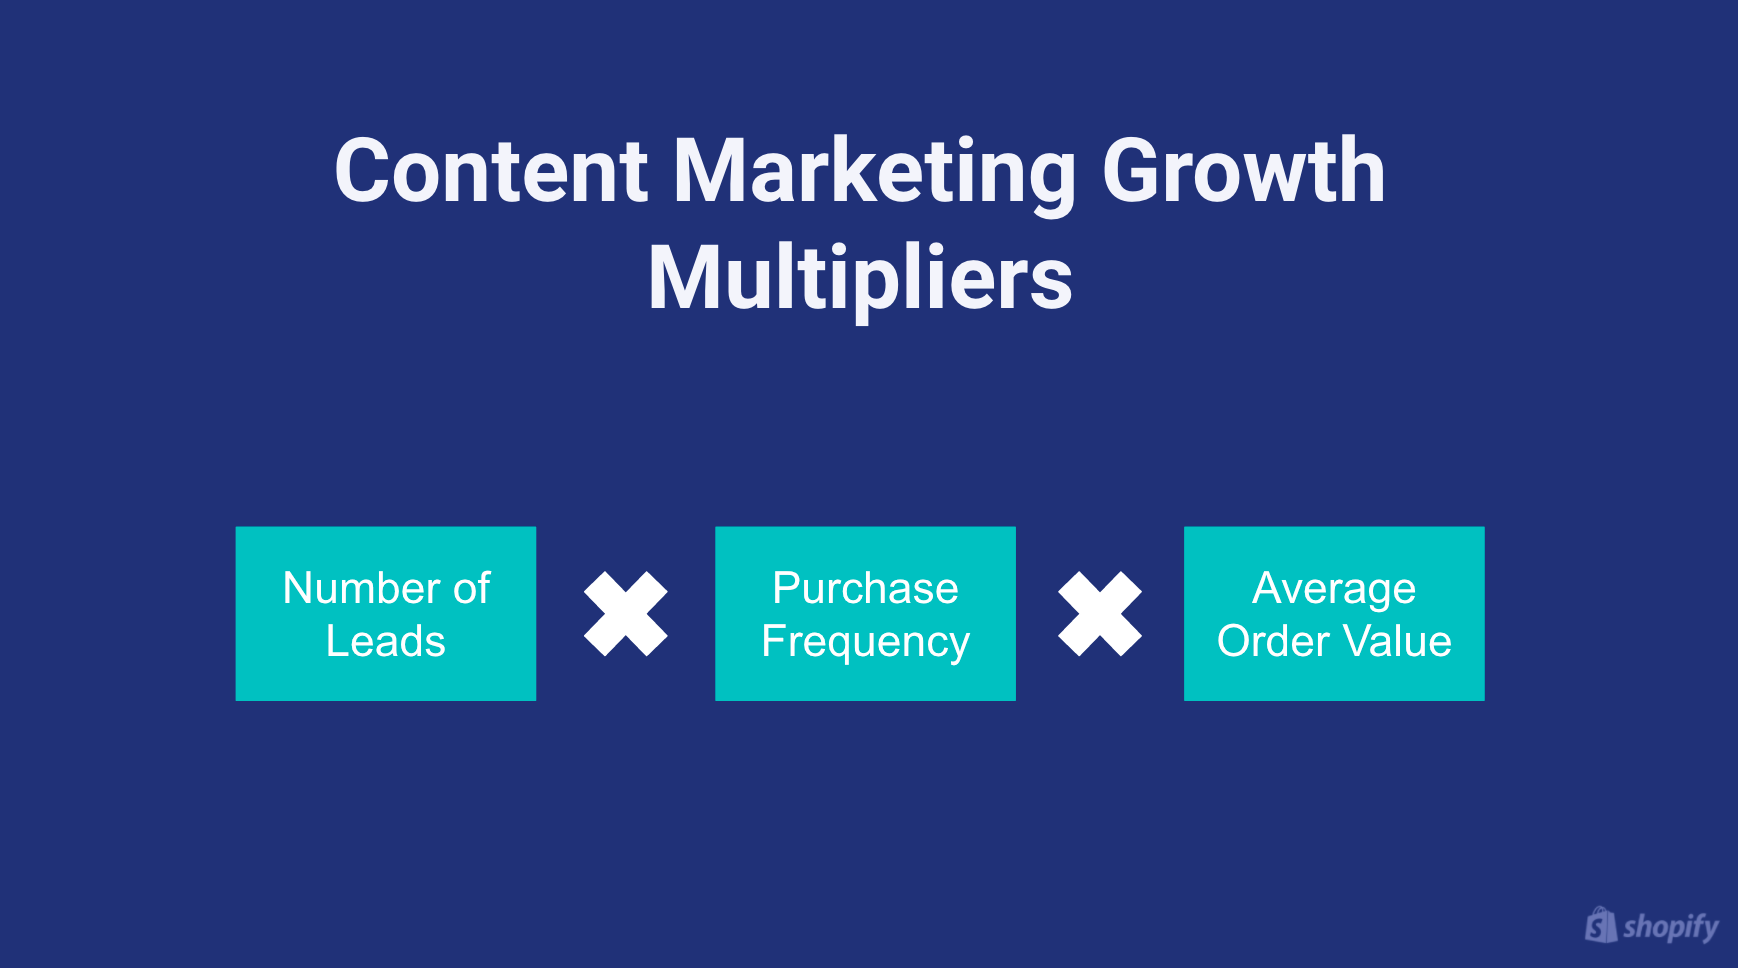 Content marketing growth multipliers